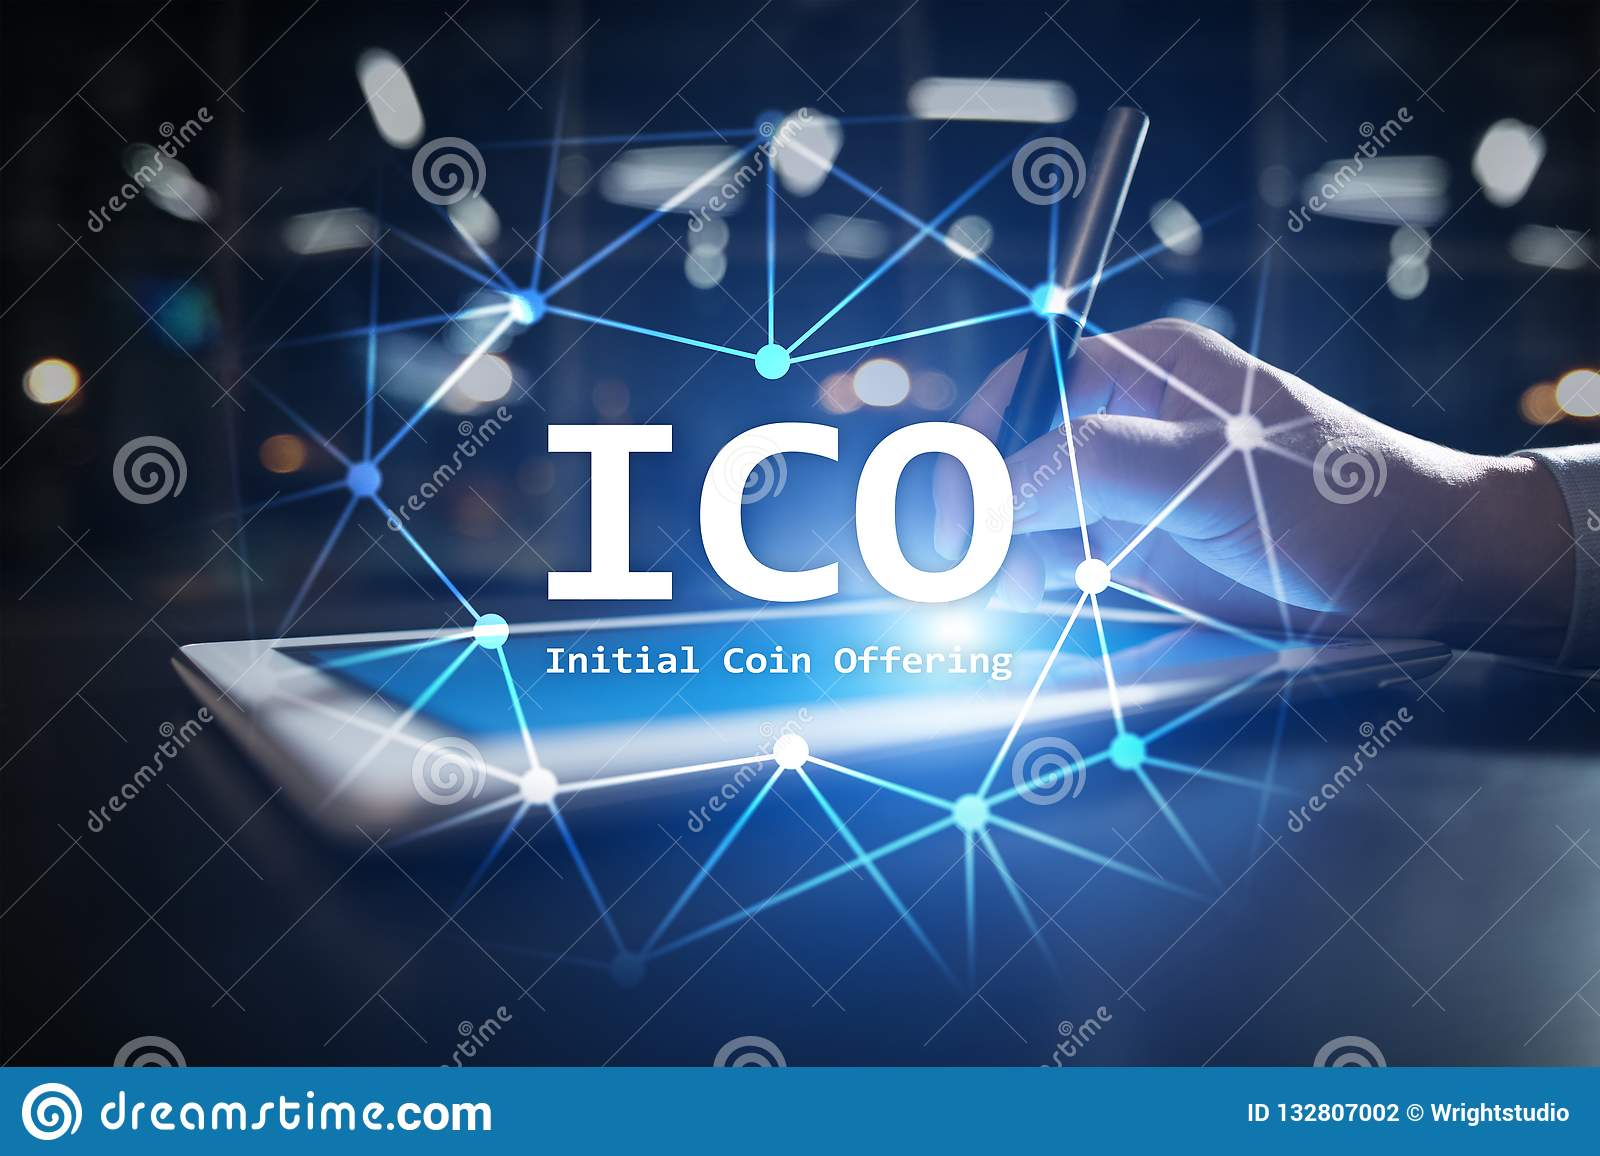 how to start ico cryptocurrency